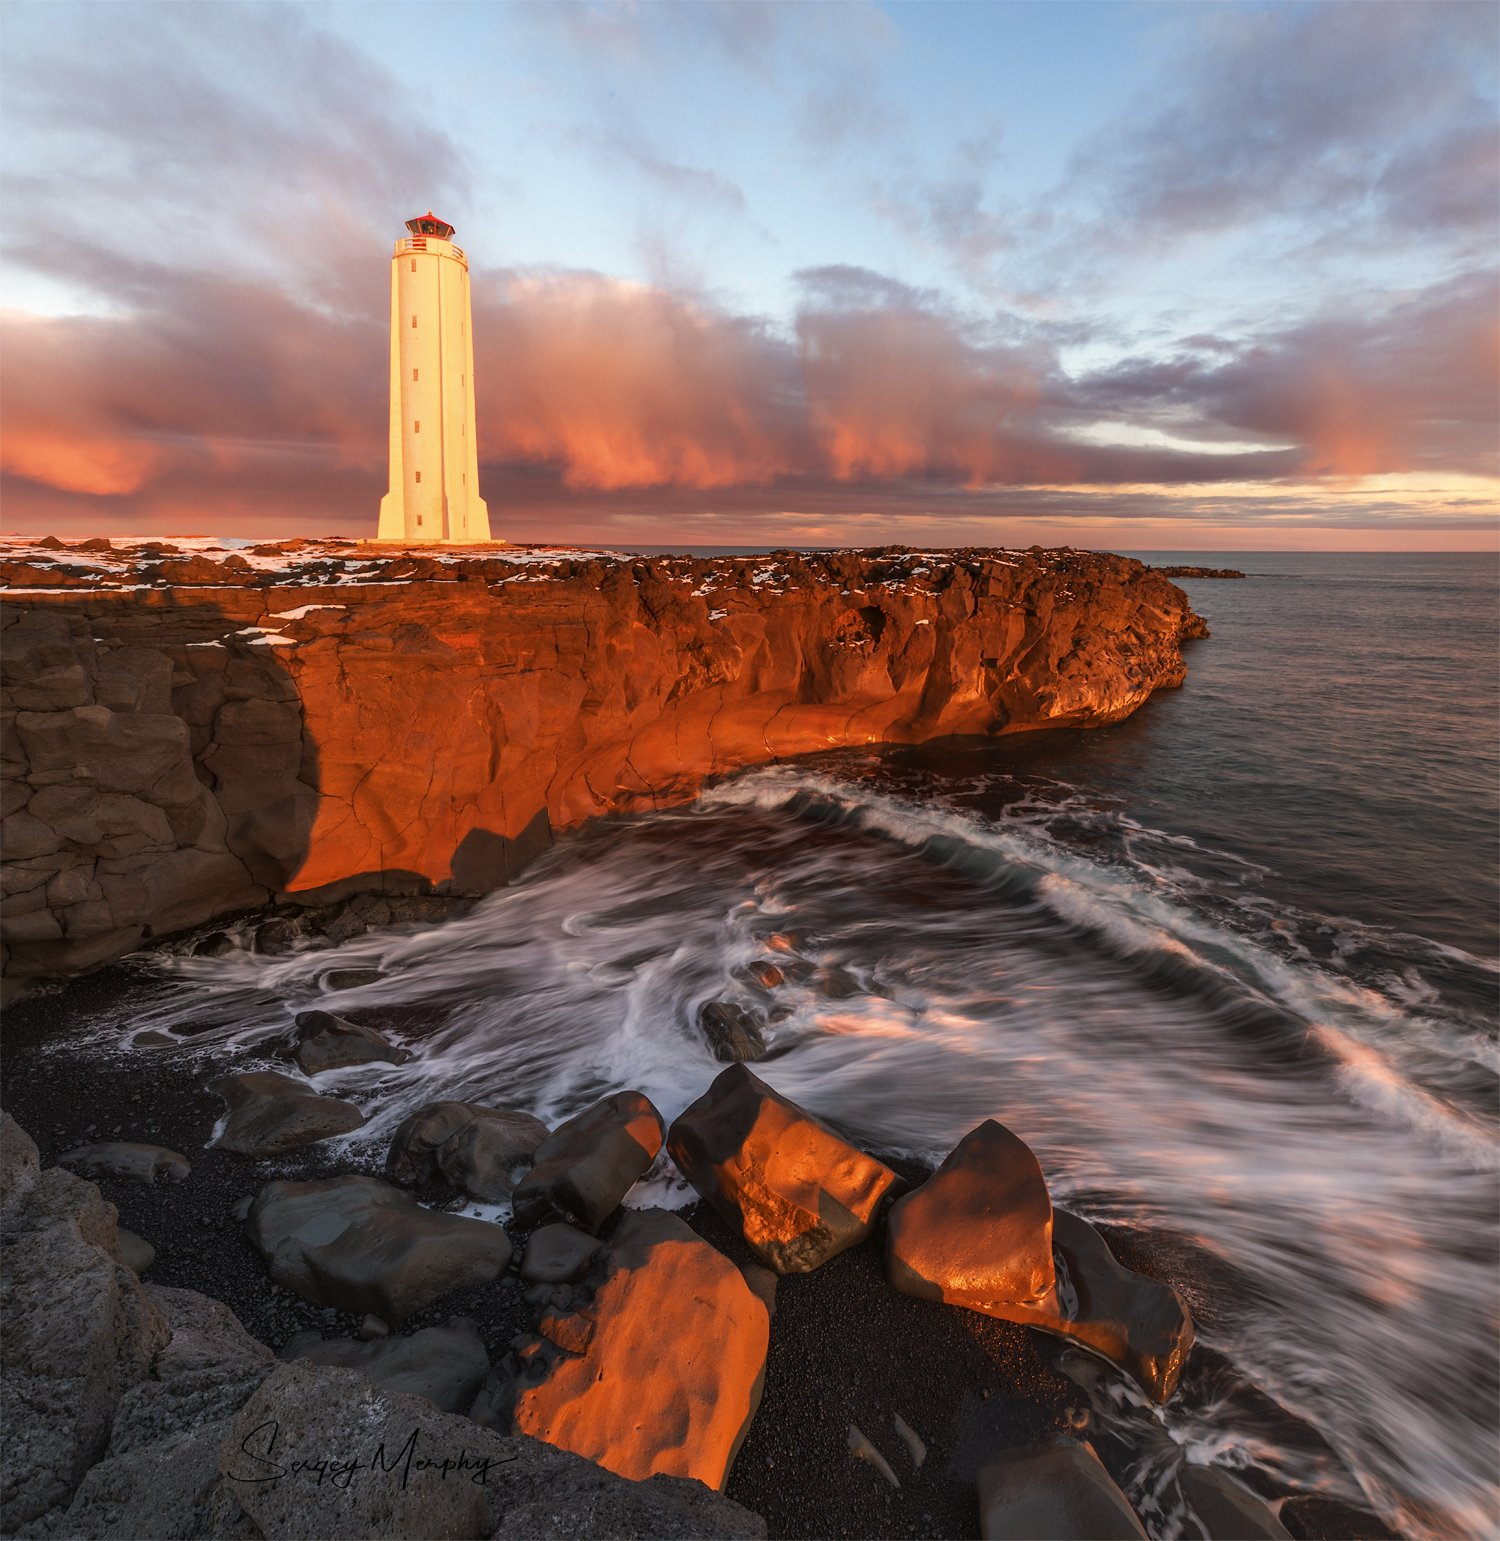 iceland, malarrif, lighthouse, sunset, Sergey Merphy